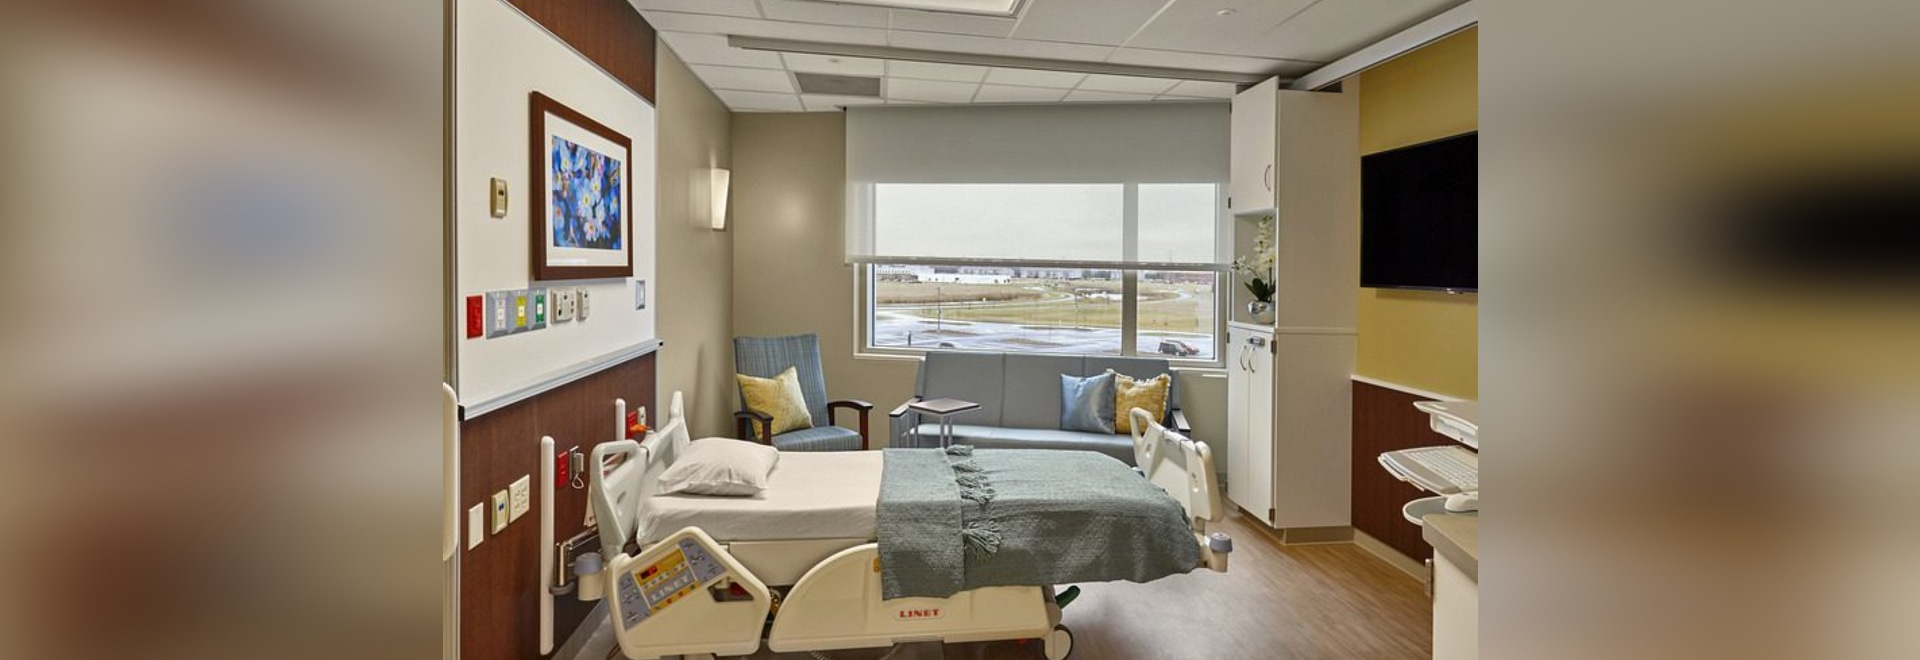 Design Strategies for Right-Sizing Patient Rooms to Optimize Efficiency